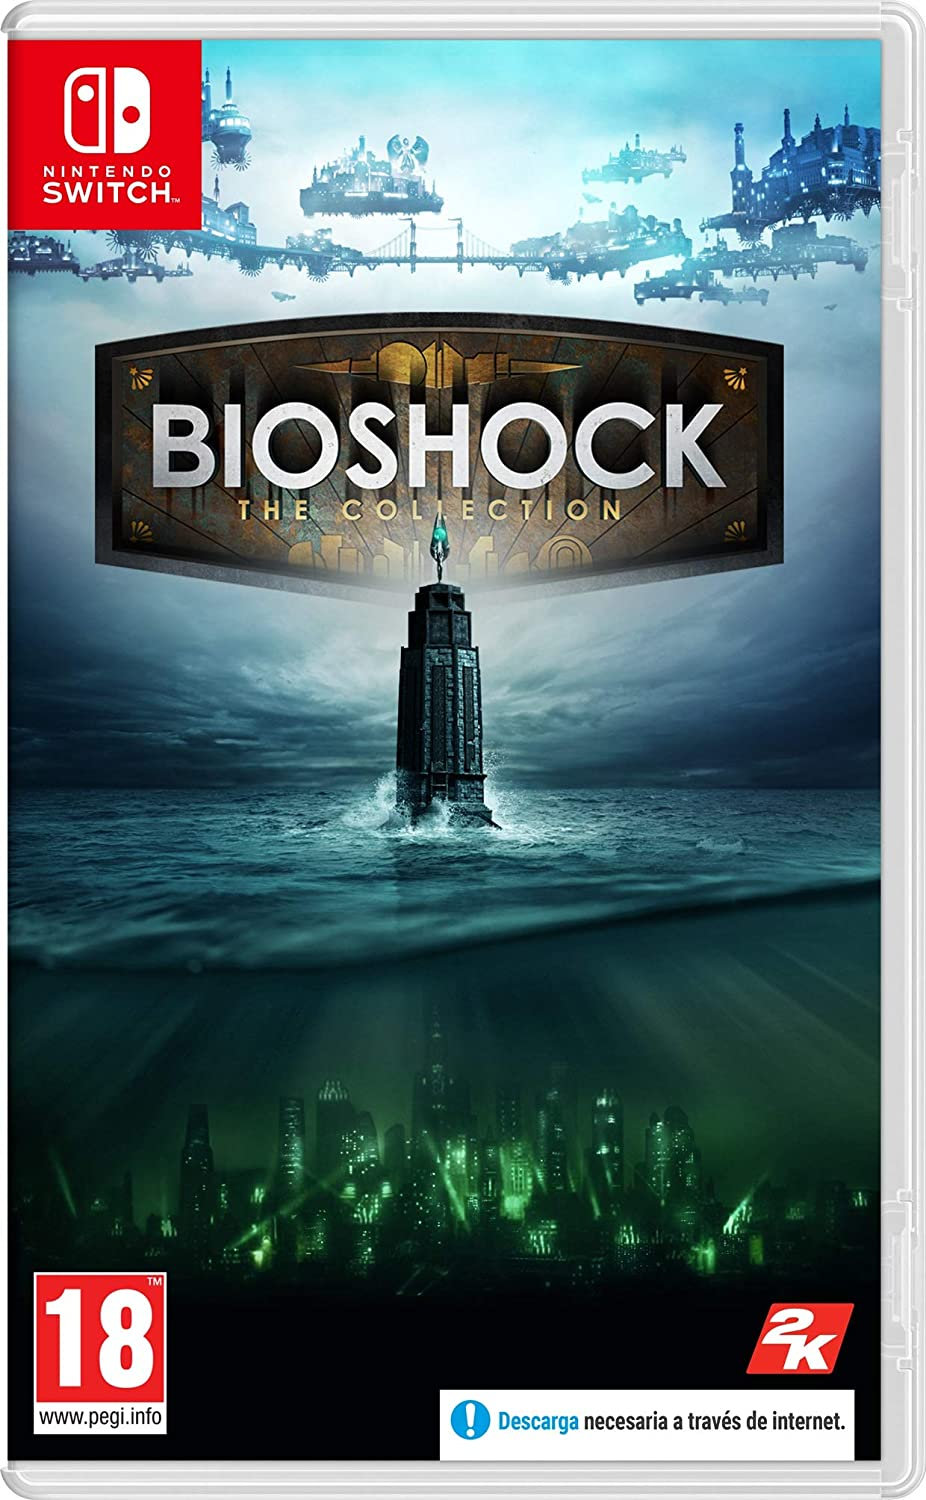 Bioshock The Collection: Amazon.es: Videojuegos